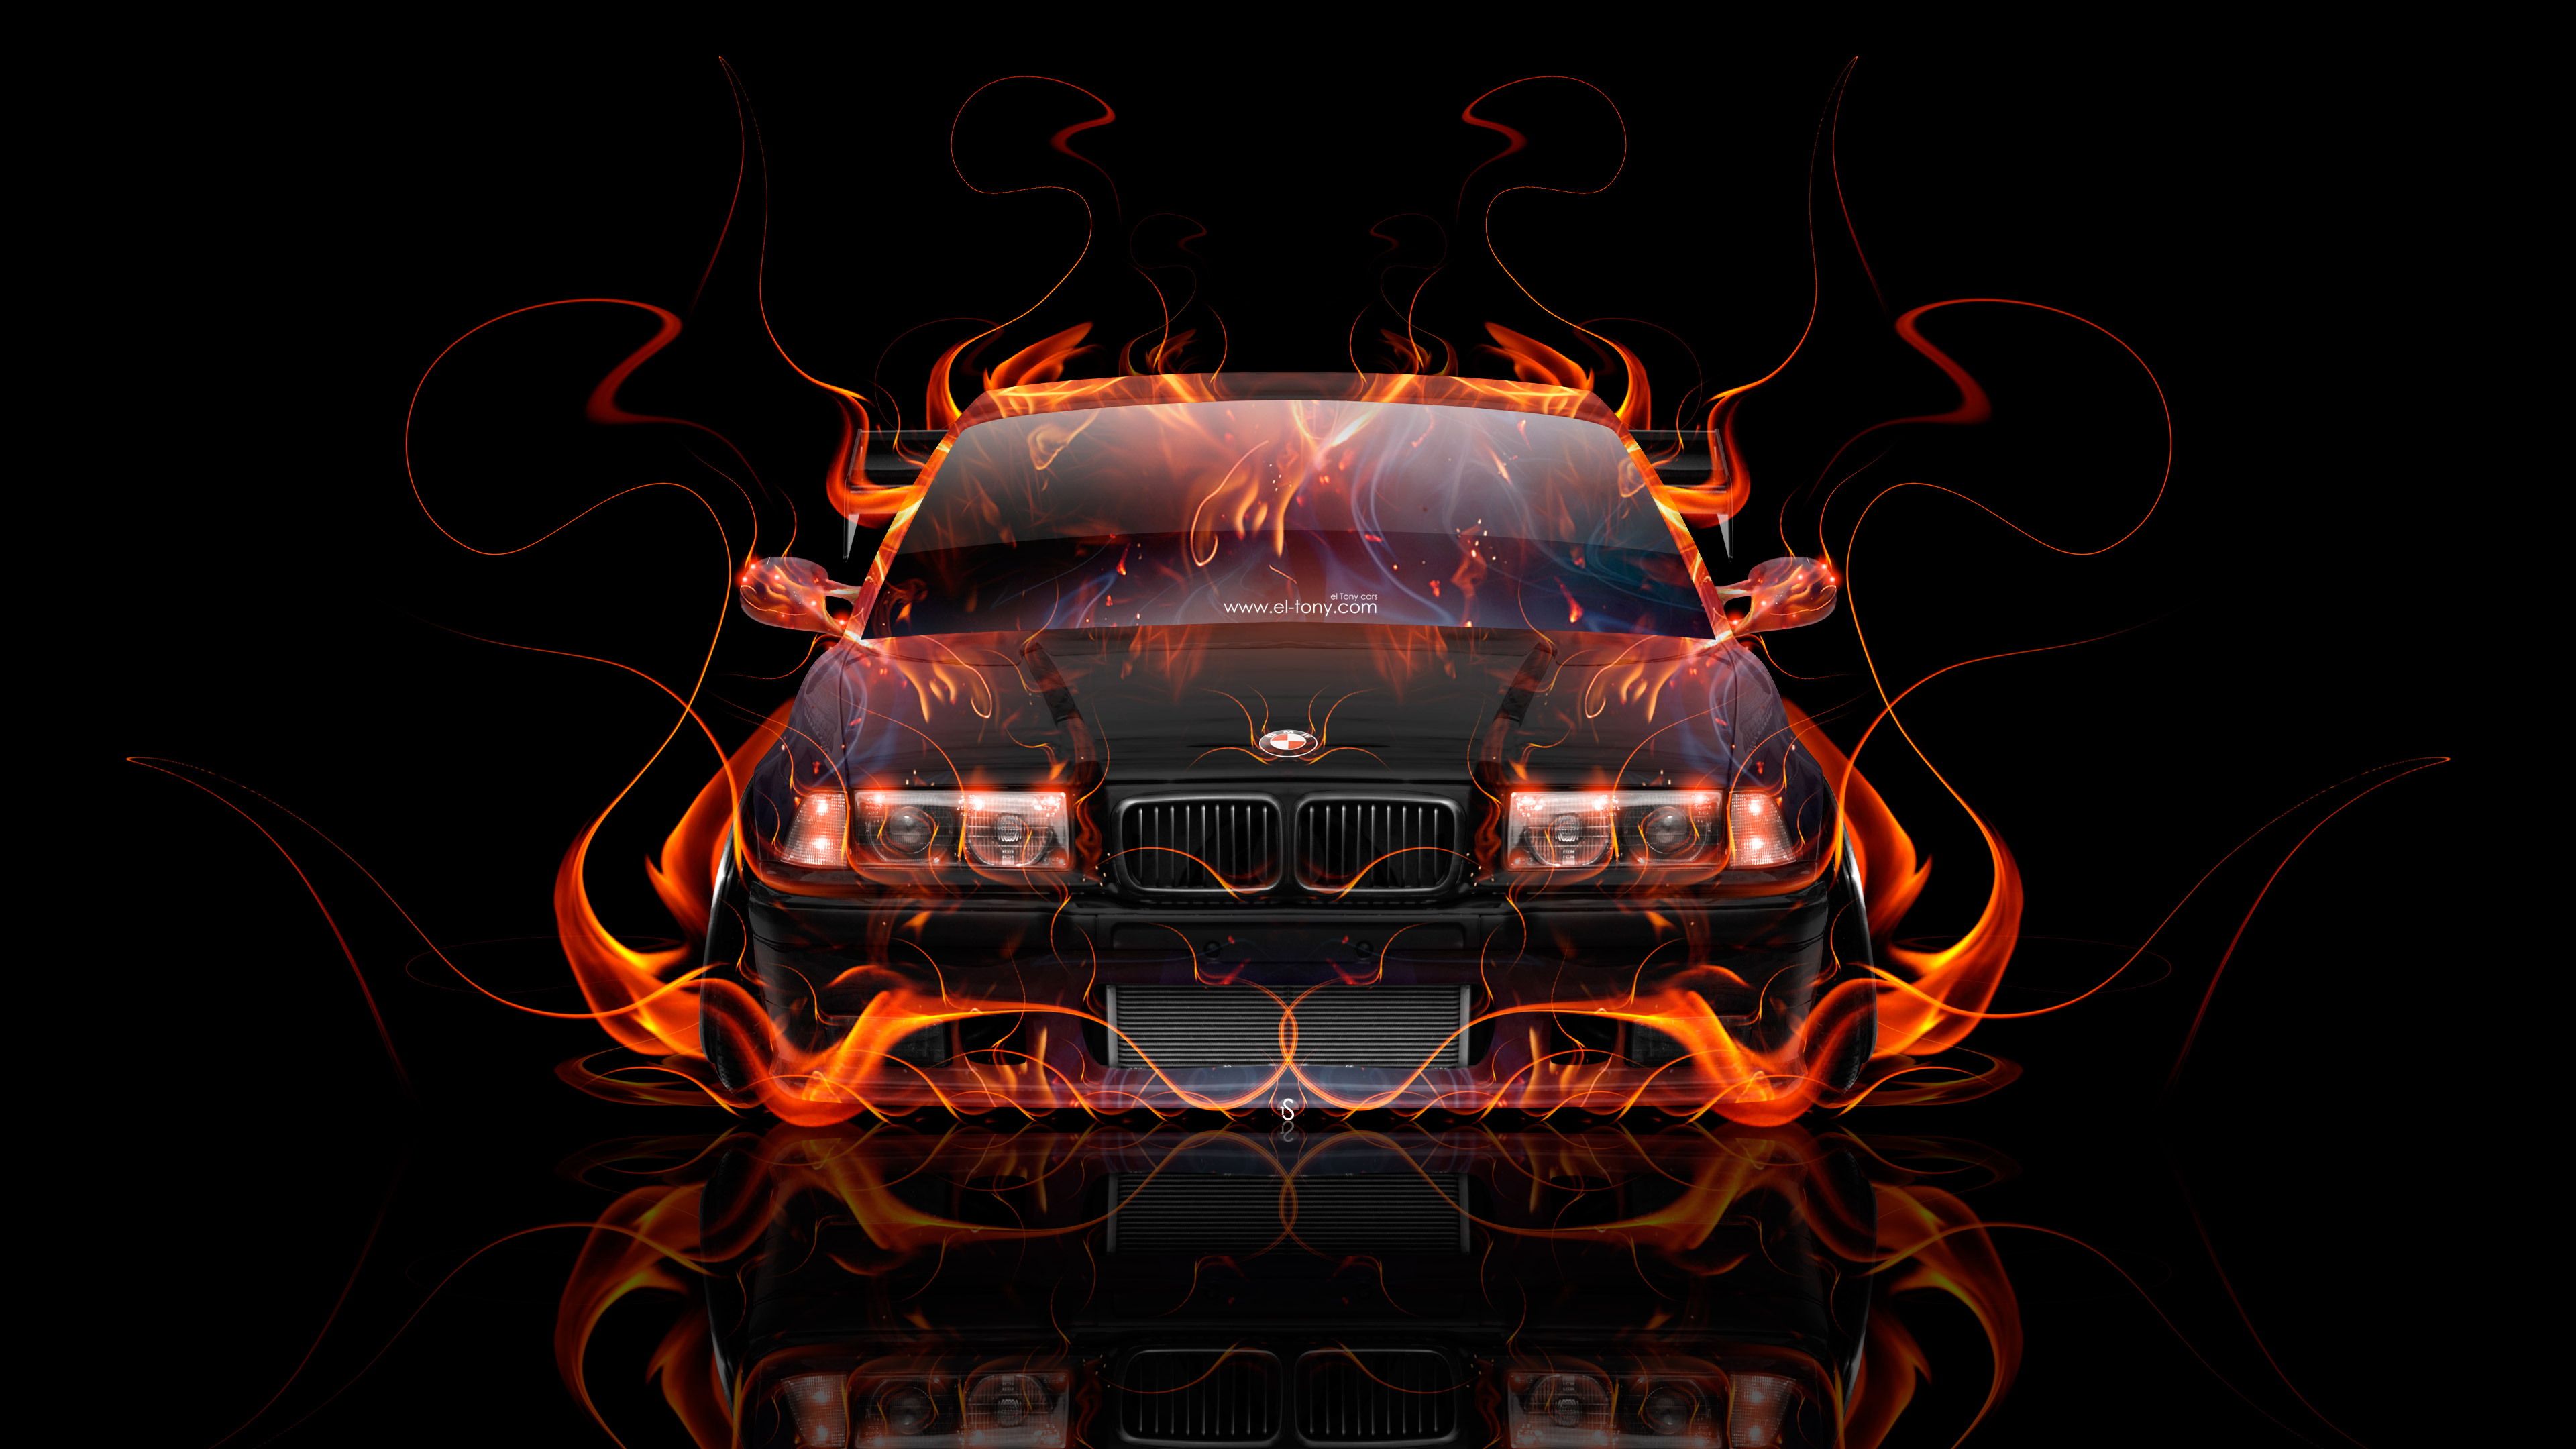 BMW-M3-E36-Coupe-Tuning-Front-Super-Fire-Flame-Abstract-Car-2017-Red-Yellow-Orange-Black-Colors-4K-Wallpapers-el-Tony-Cars-design-by-Tony-Kokhan-www.i-v.tv-image